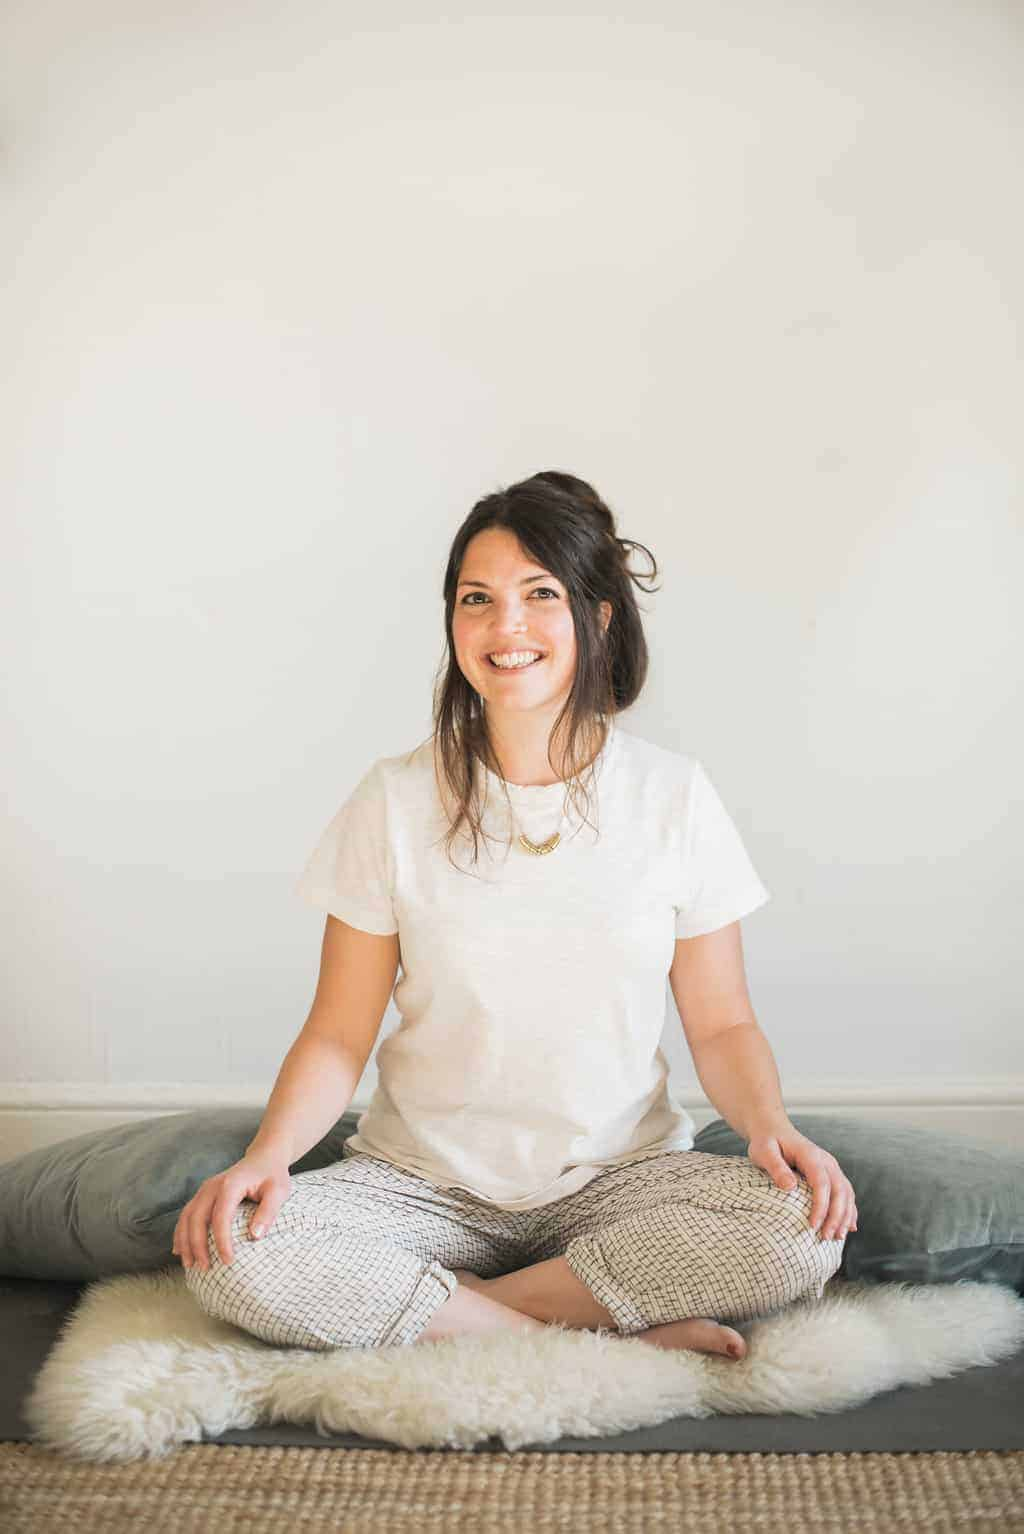 love The Yoga Brunch Club founded by Clem Balfour. Click through to discover Clem's inspirations, tips for finding happiness and creativity and one or two simple pleasures and local loves